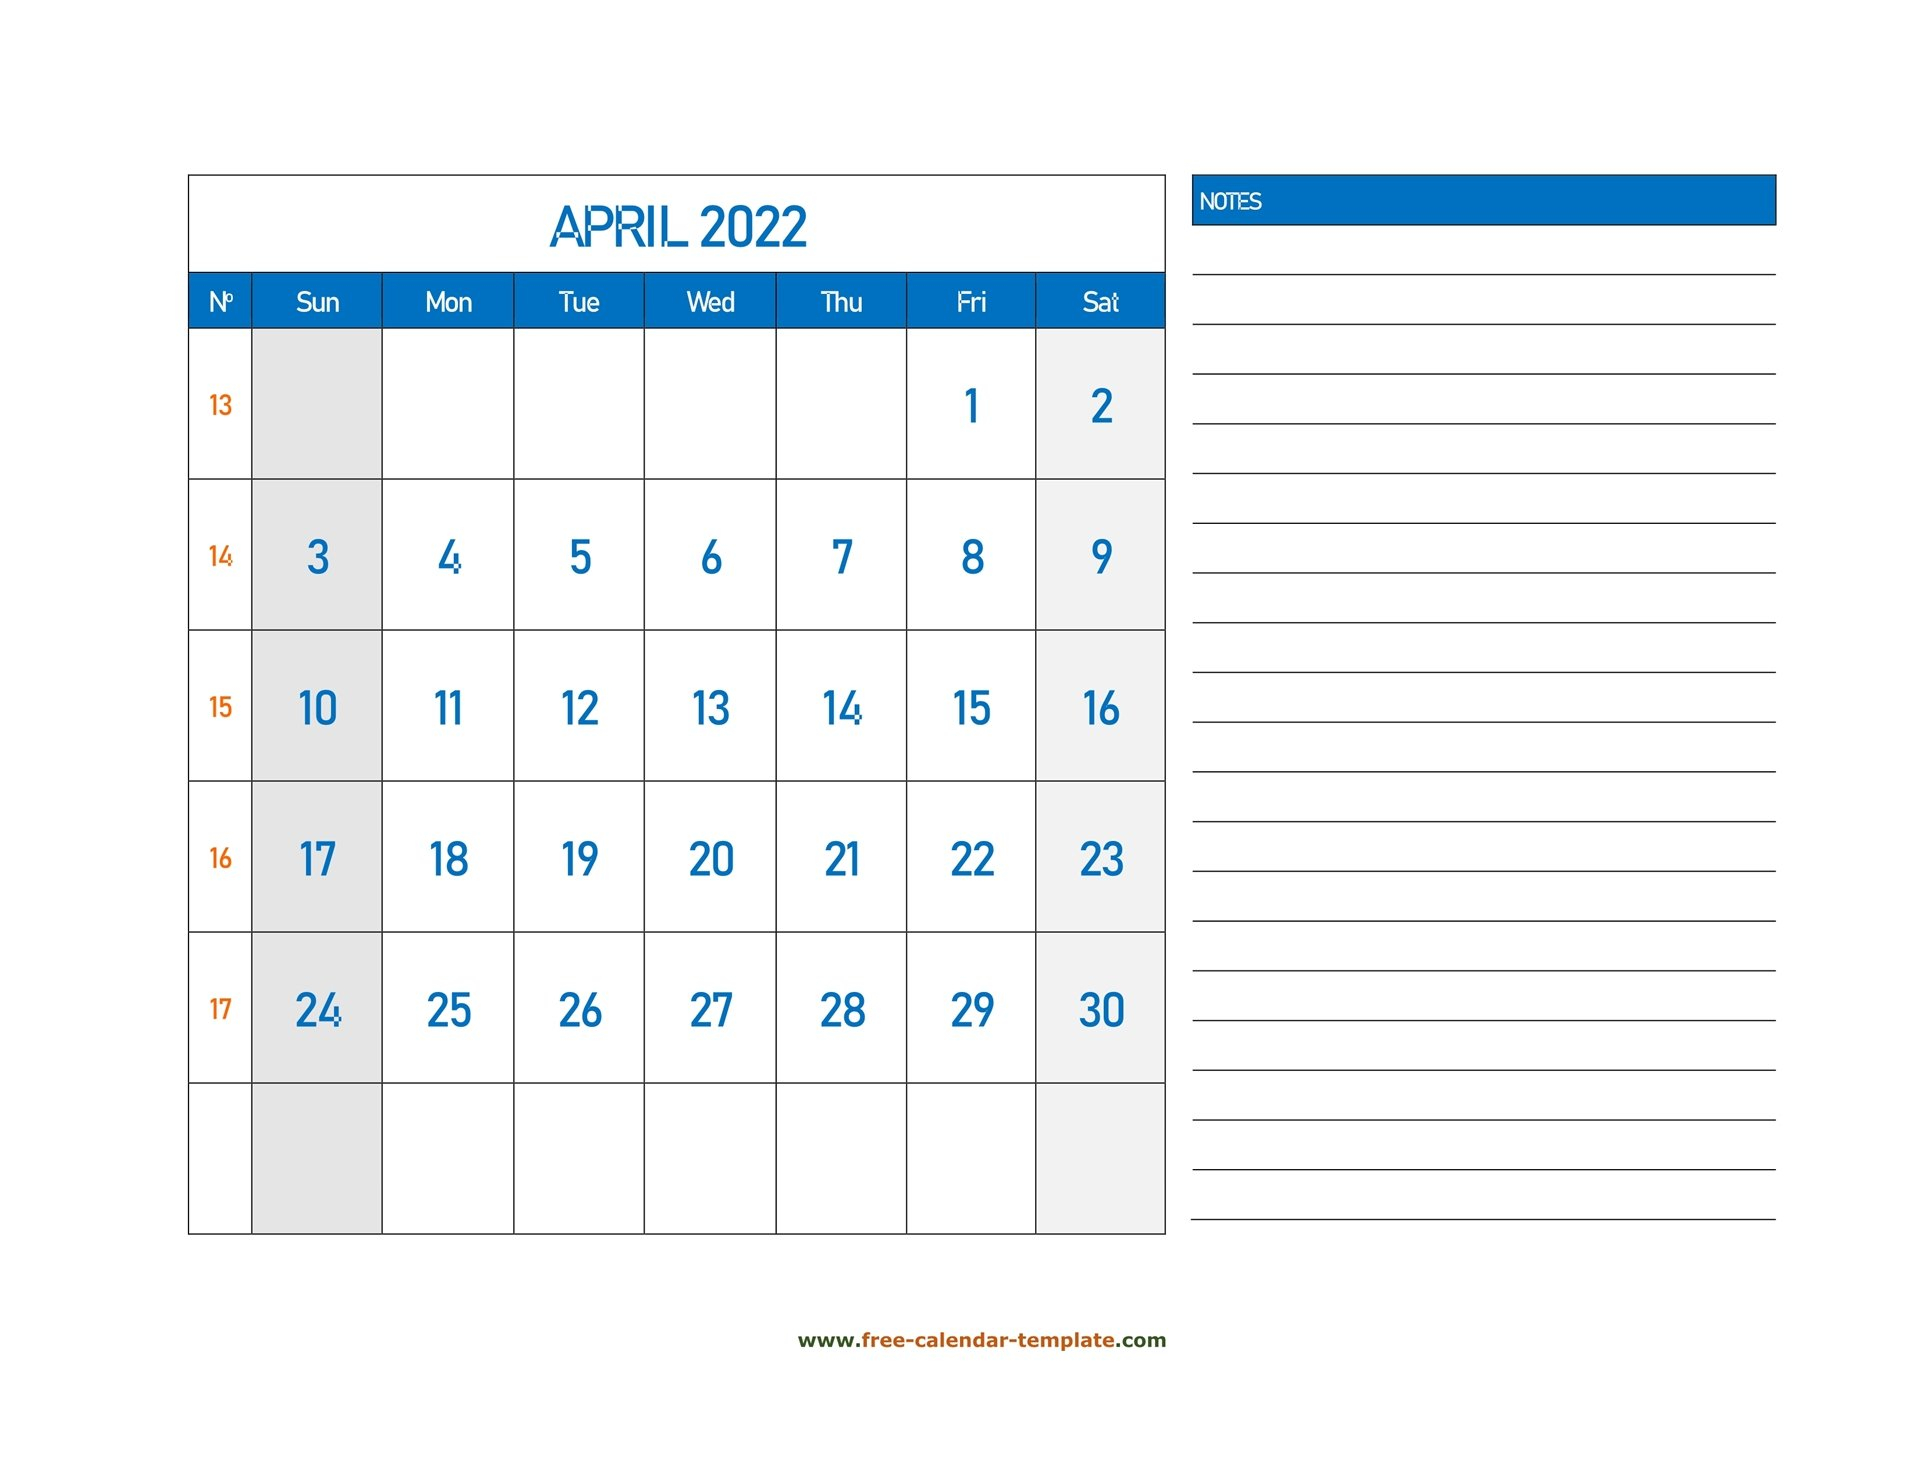 April Calendar 2022 Grid Lines For Holidays And Notes intended for April 2022 Calendar To Print